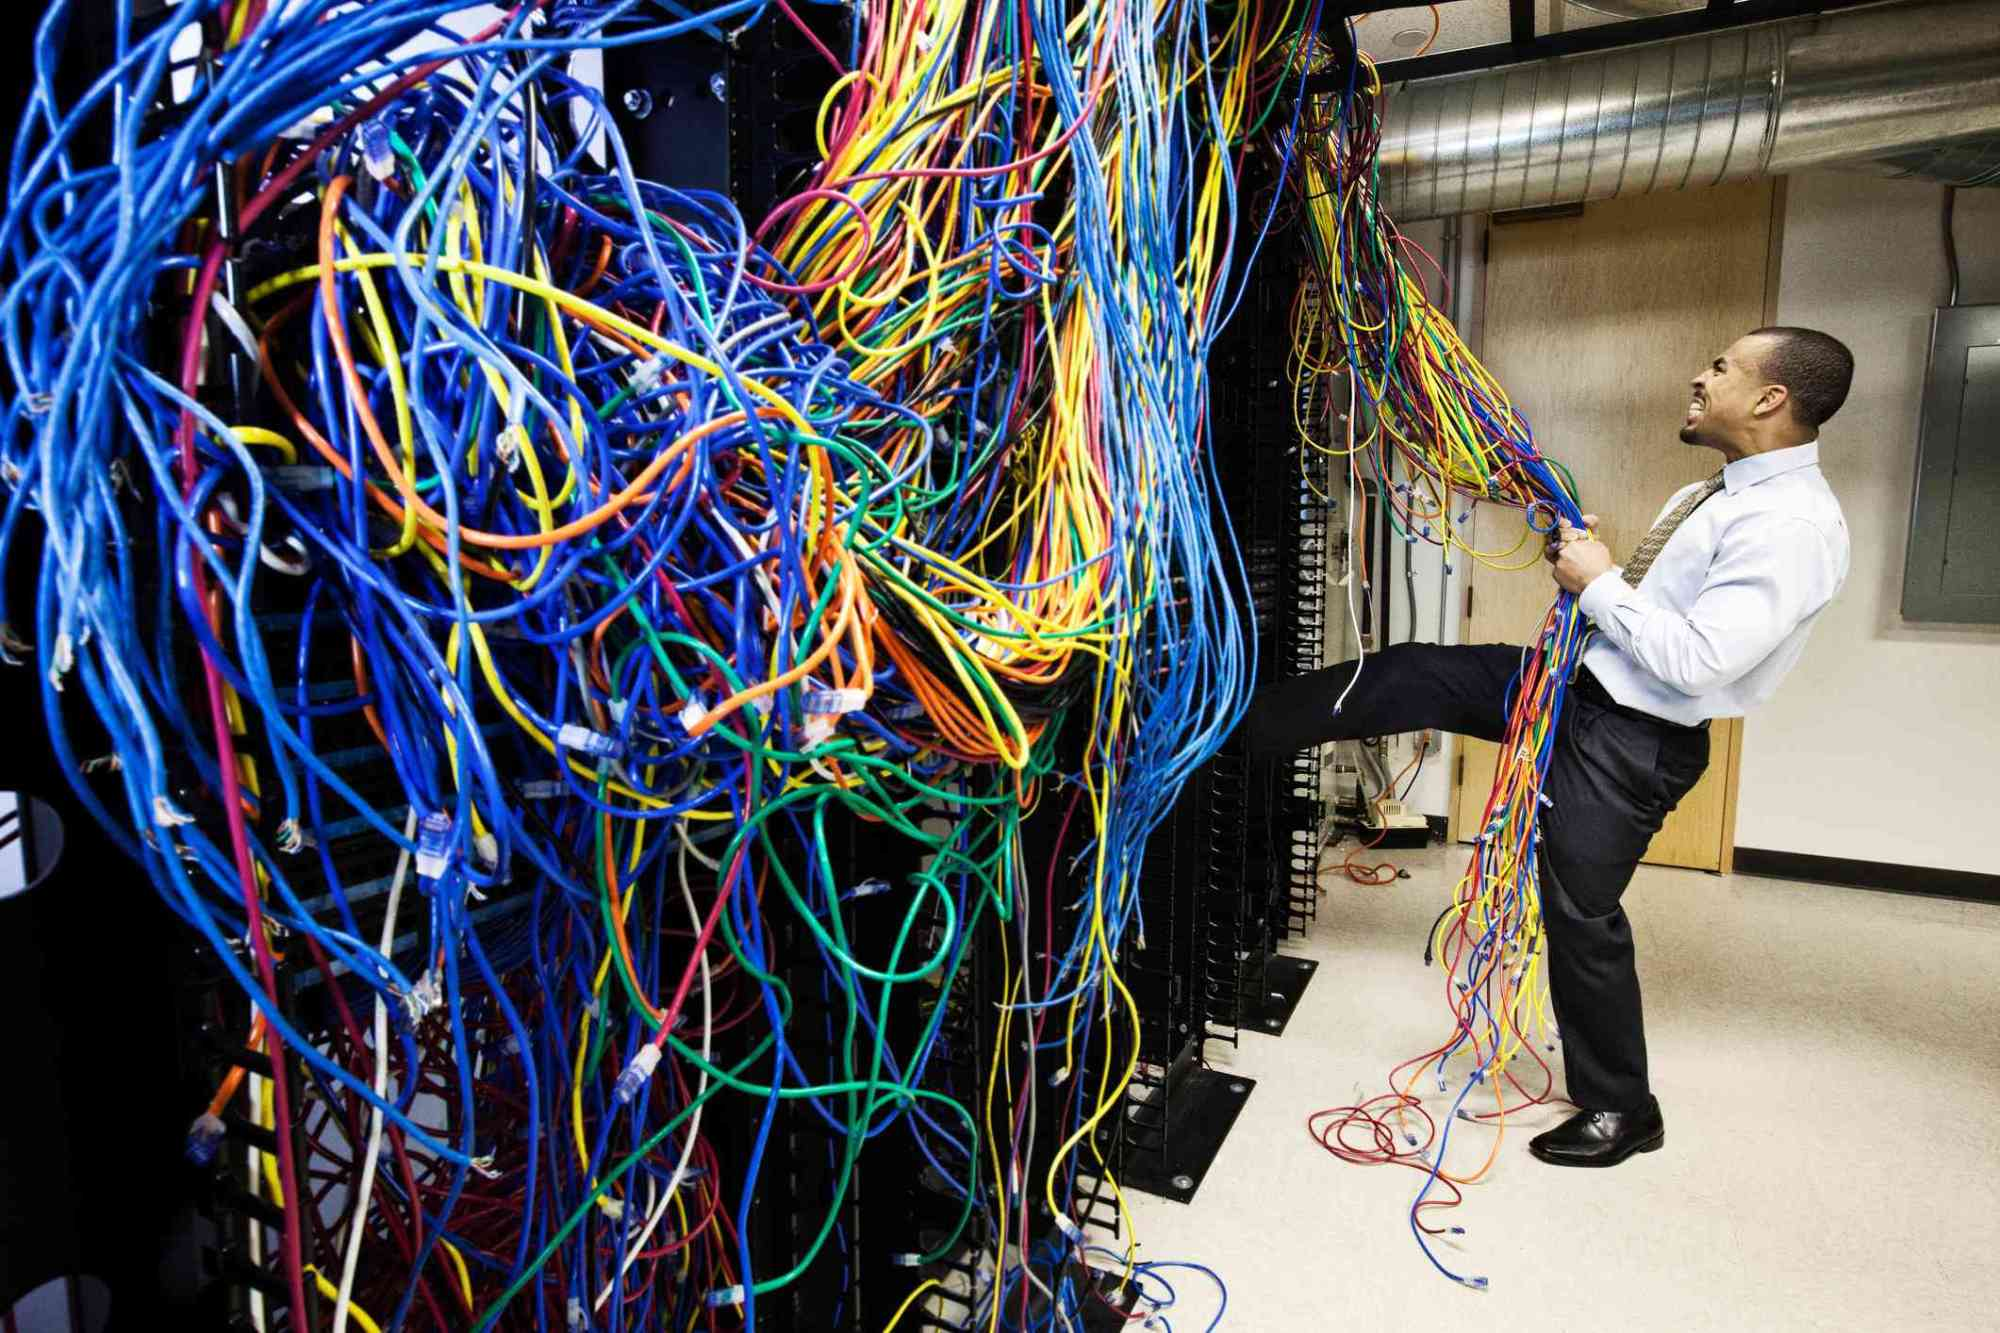 hight resolution of a technician pulling on a tangled mess of cat 5 cables in a computer server room